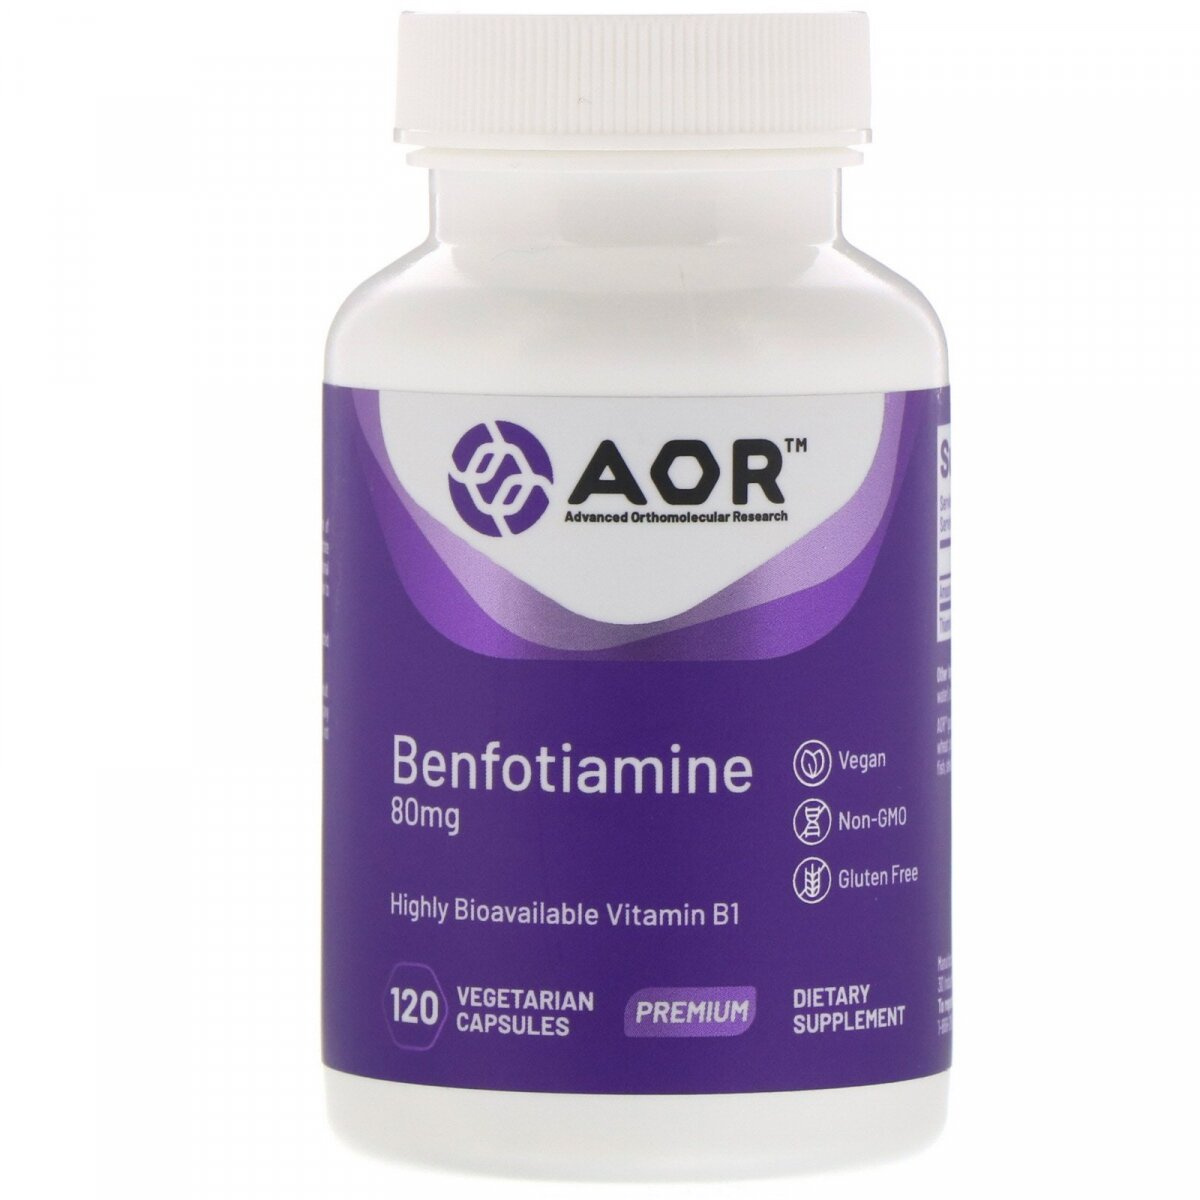 Бенфотиамин, Benfotiamine, Advanced Orthomolecular Research AOR, 120 вегетарианских капсул